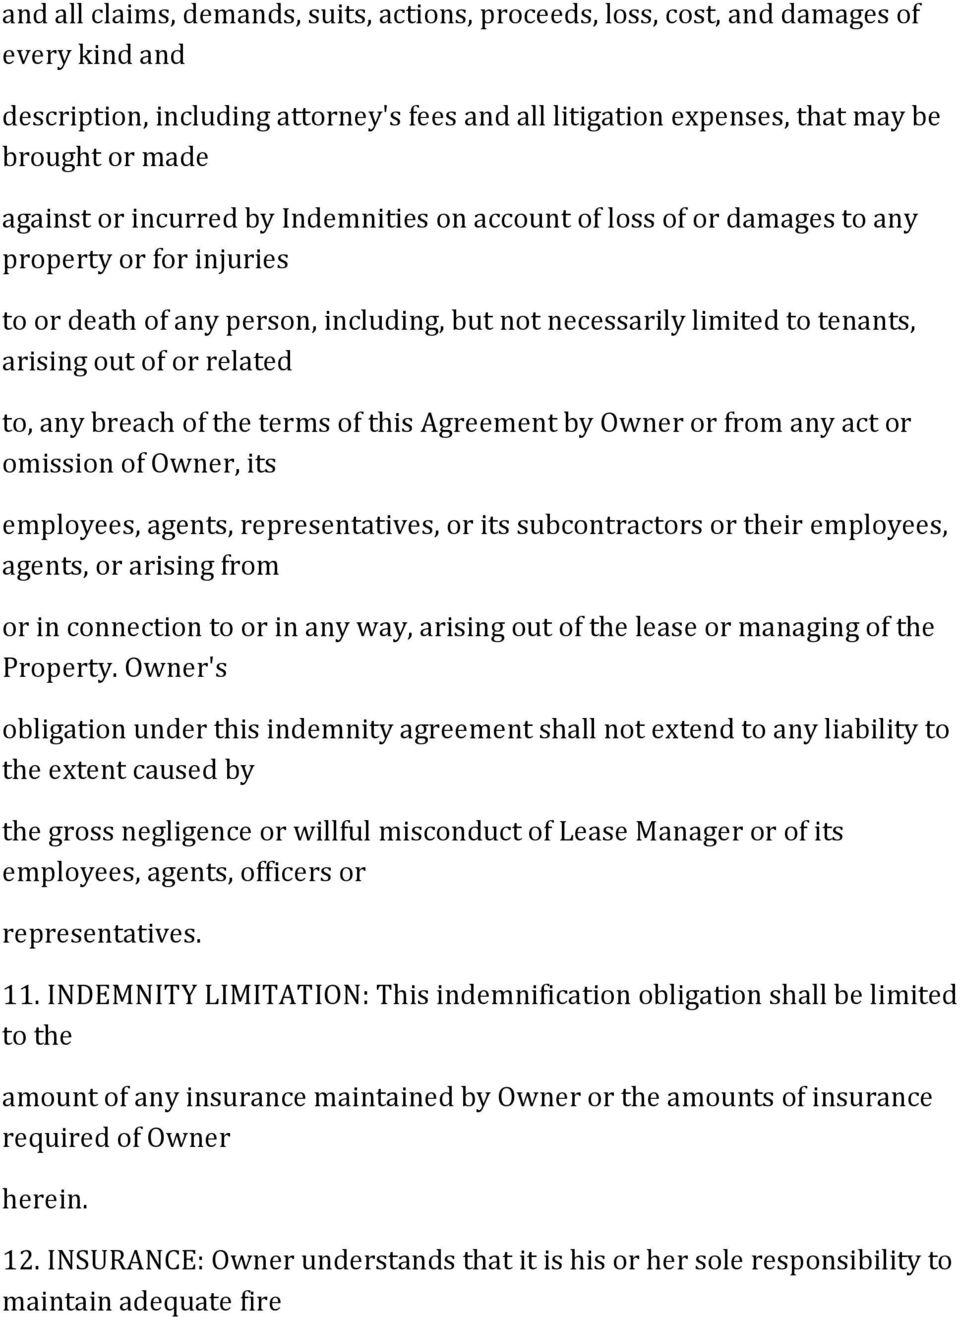 any breach of the terms of this Agreement by Owner or from any act or omission of Owner, its employees, agents, representatives, or its subcontractors or their employees, agents, or arising from or